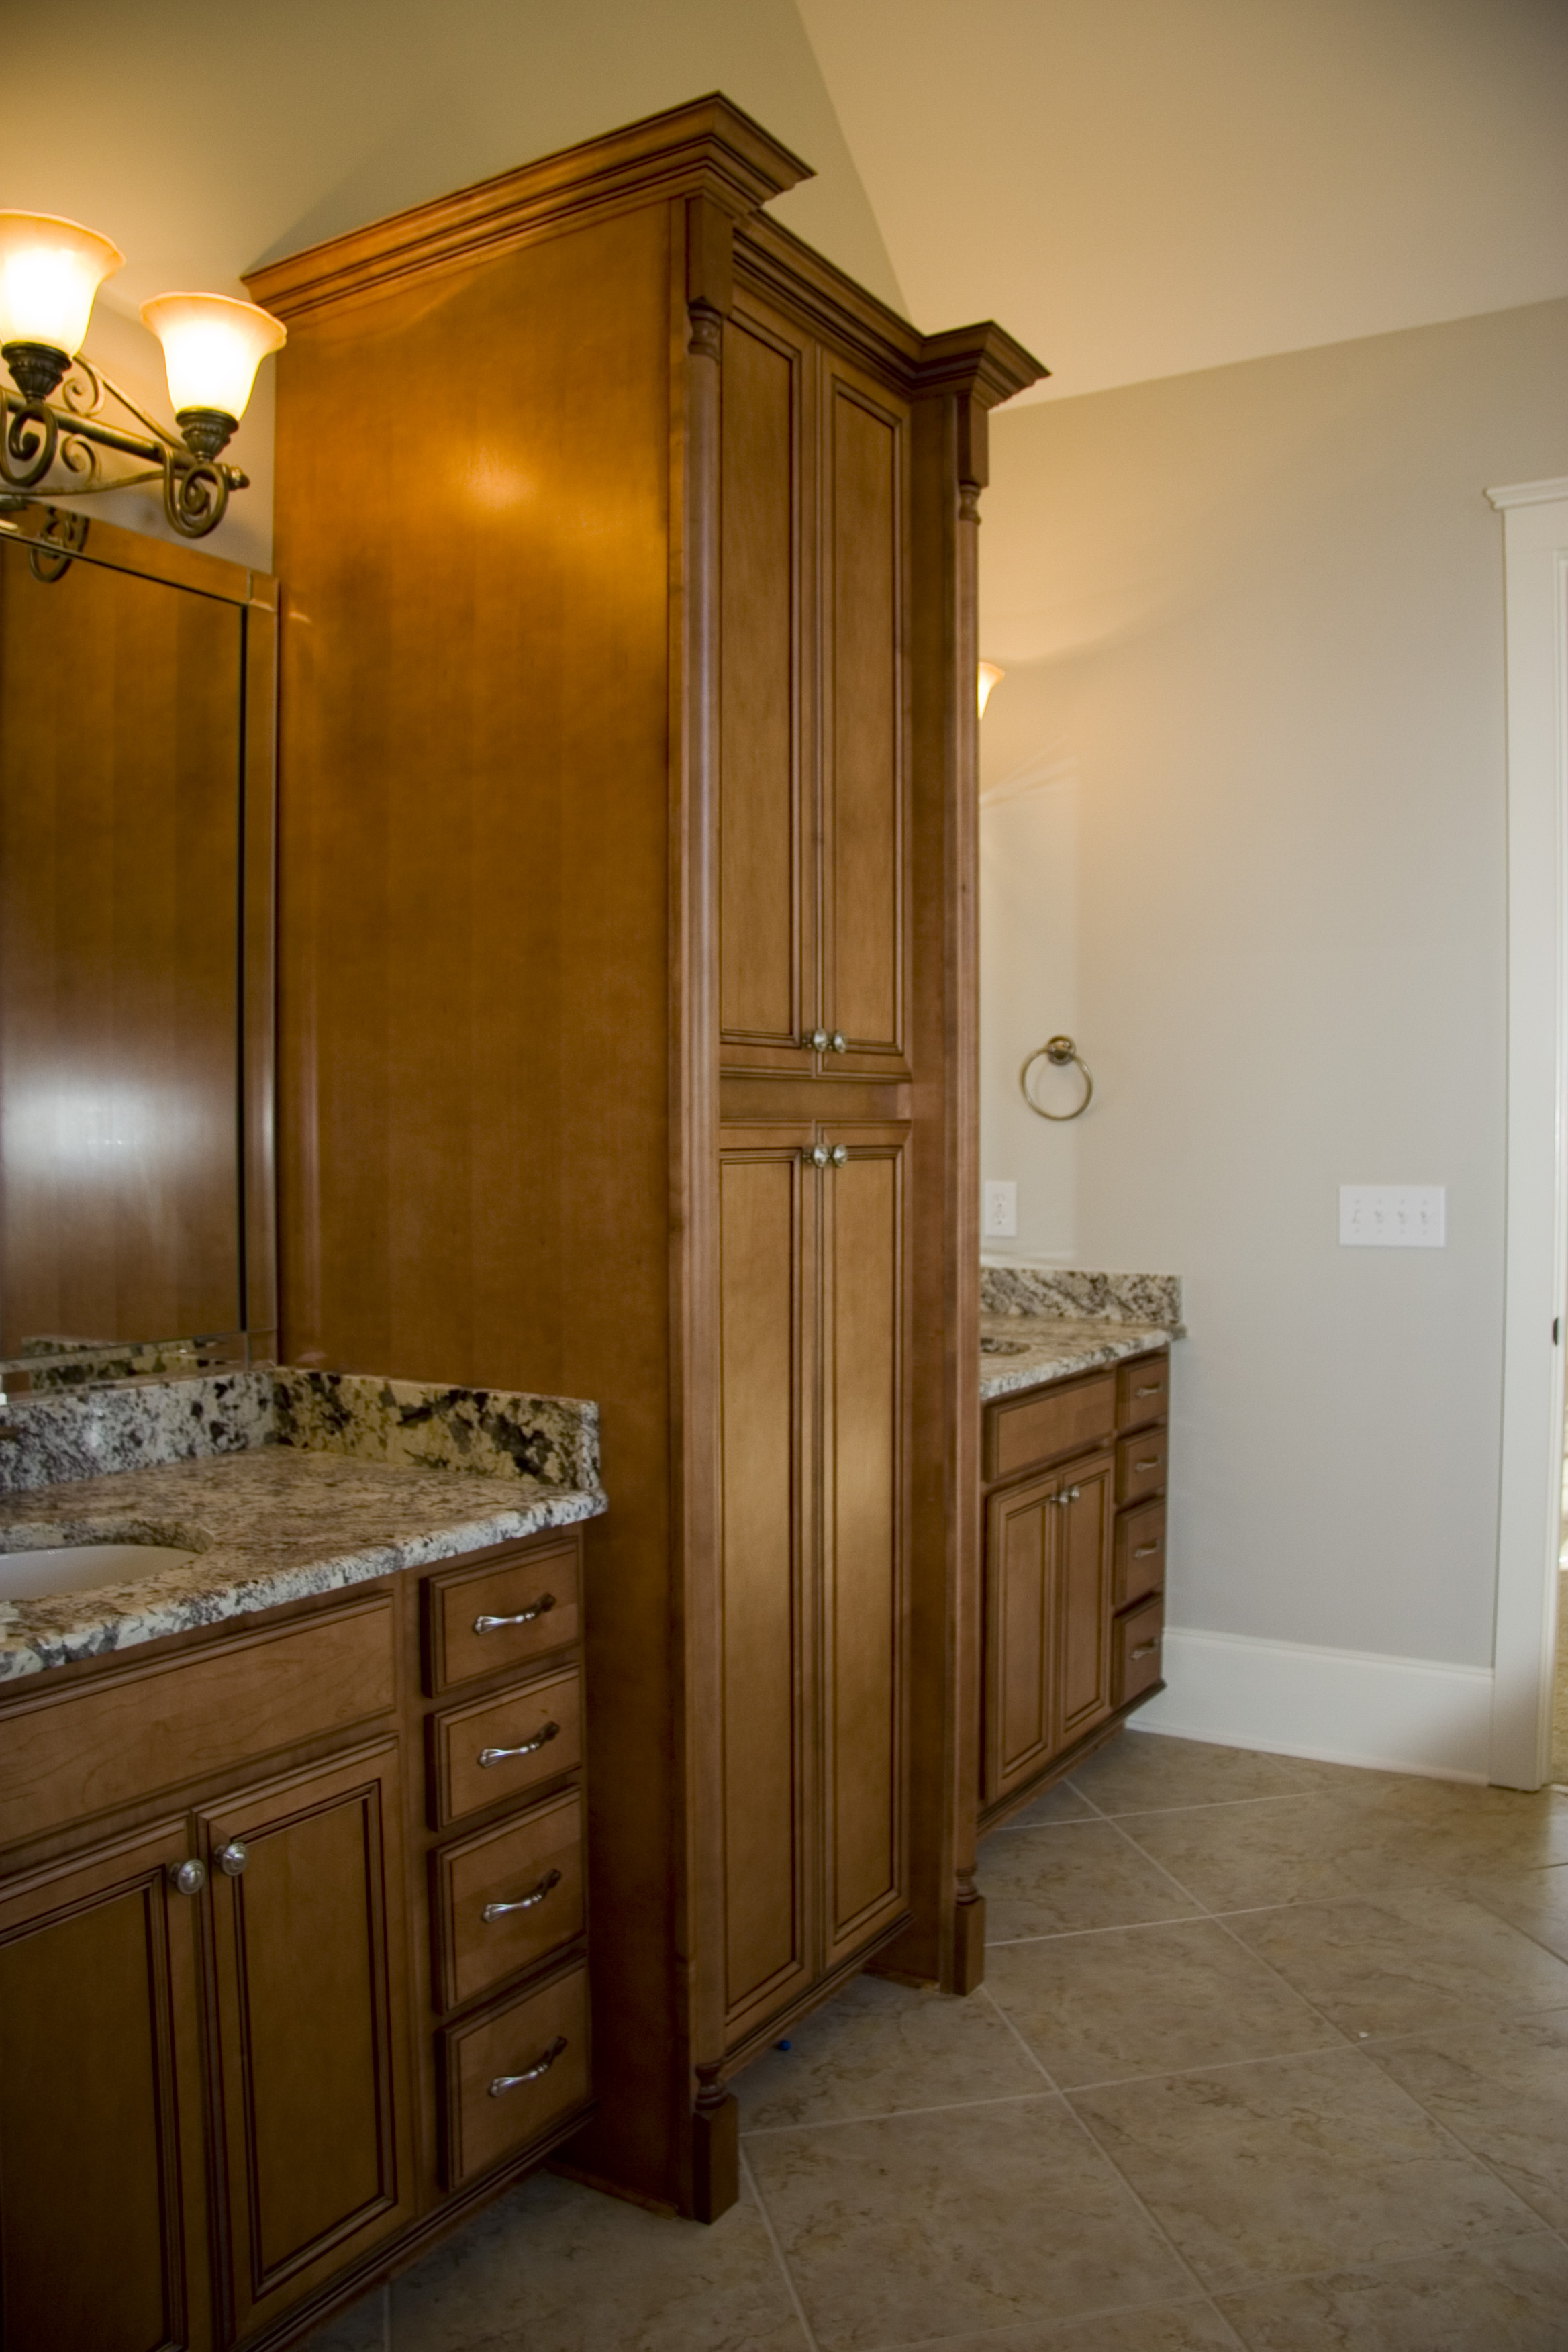 Supplier Of Marsh Cabinets Marsh Furniture Company Offers A Wide